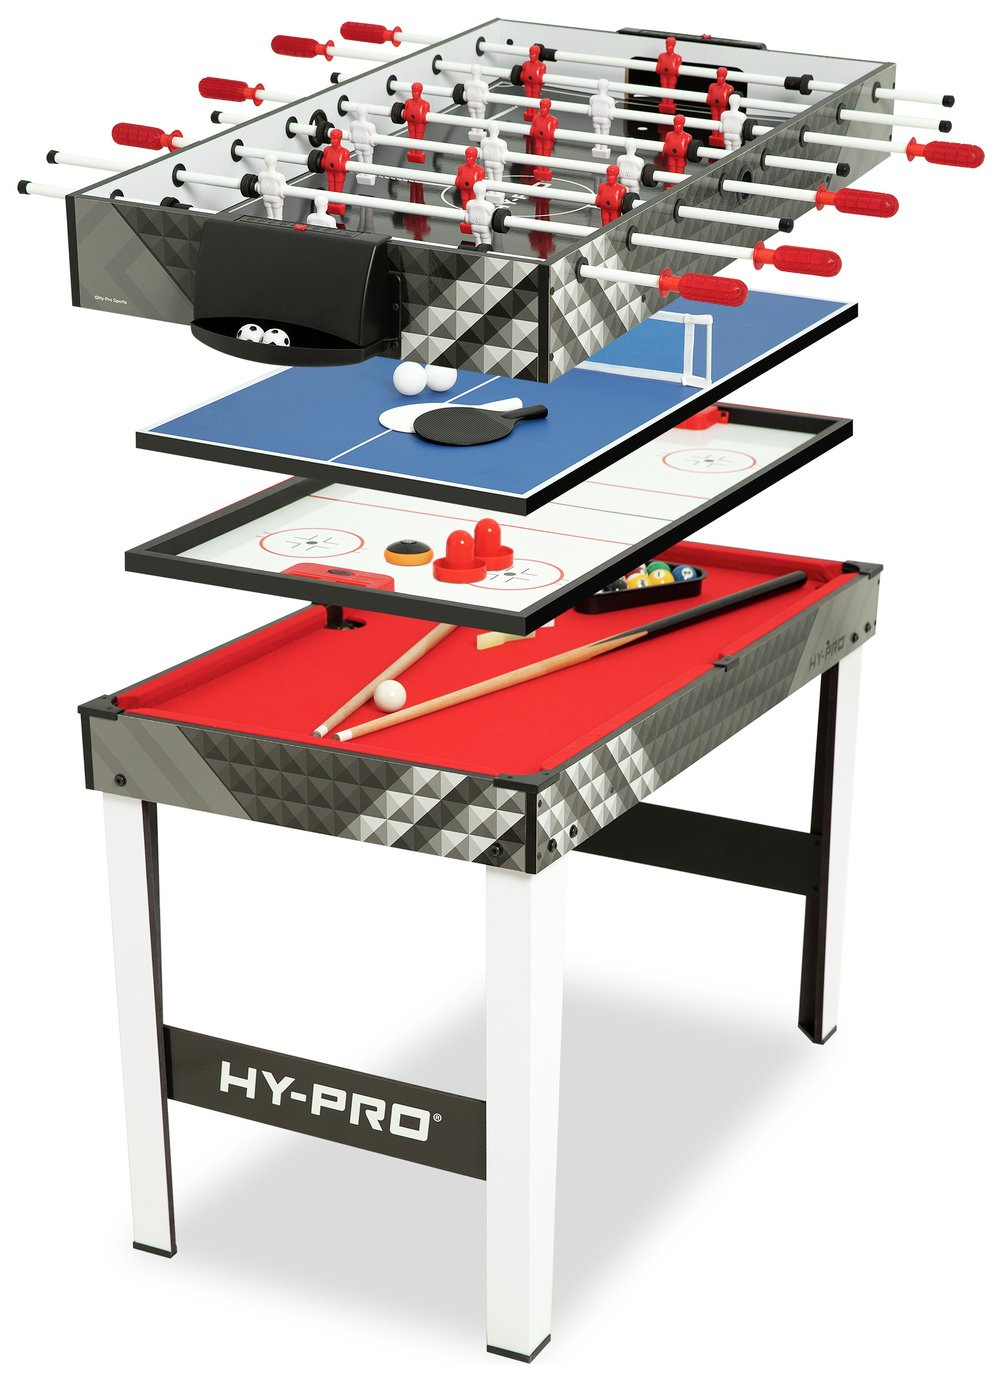 Hypro 4 In 1 Games Table 163 89 99 Gay Times